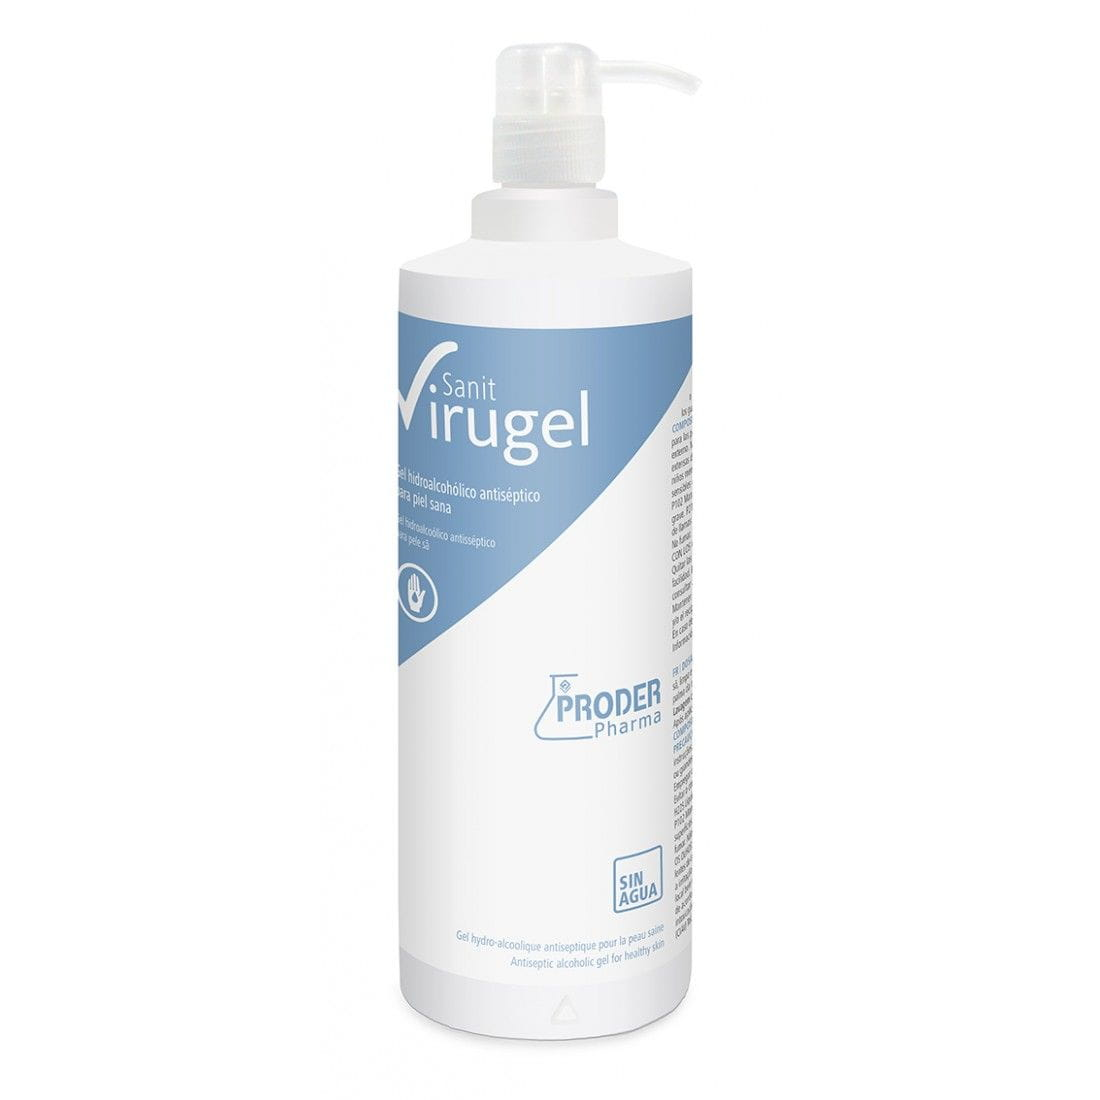 Virugel 1 Litre